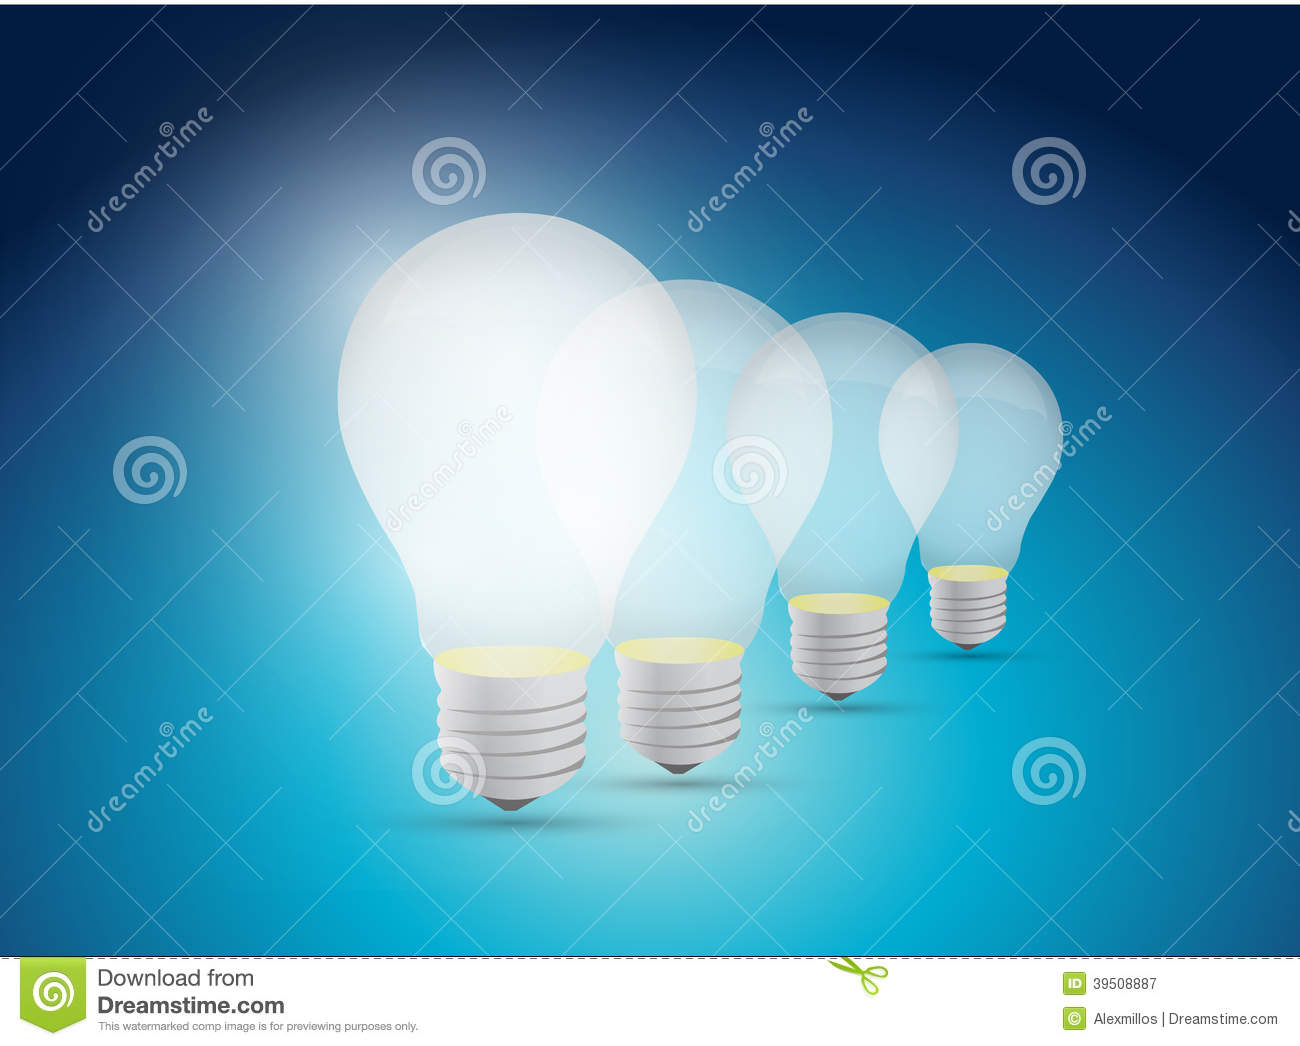 Light bulb great idea illustration design